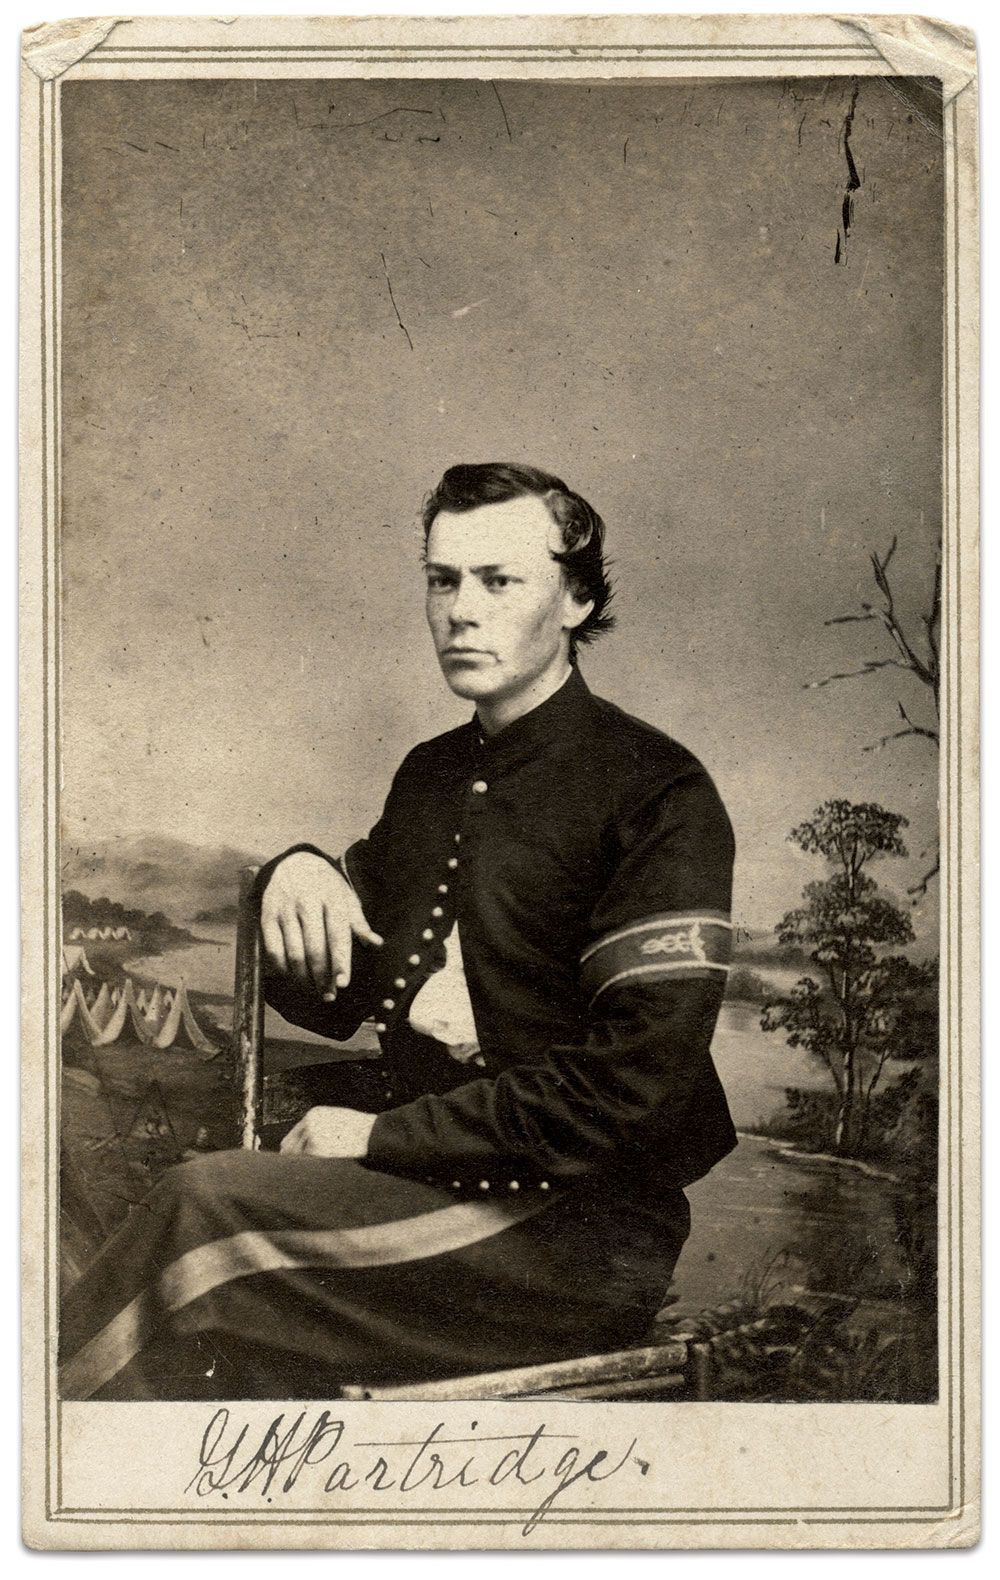 George H. Partridge, above, began his service in 1862 with the 29th Massachusetts Infantry. A year later in Kentucky, he fell ill and was hospitalized. Before the end of 1863 he joined the 47th Kentucky Infantry as a hospital steward. He appears here with the proper chevrons and the wide stripe of the non-commissioned officer on his trousers. He later became a captain in the 120th U.S. Colored Infantry. Carte de visite by an anonymous photographer. Ronald S. Coddington Collection.